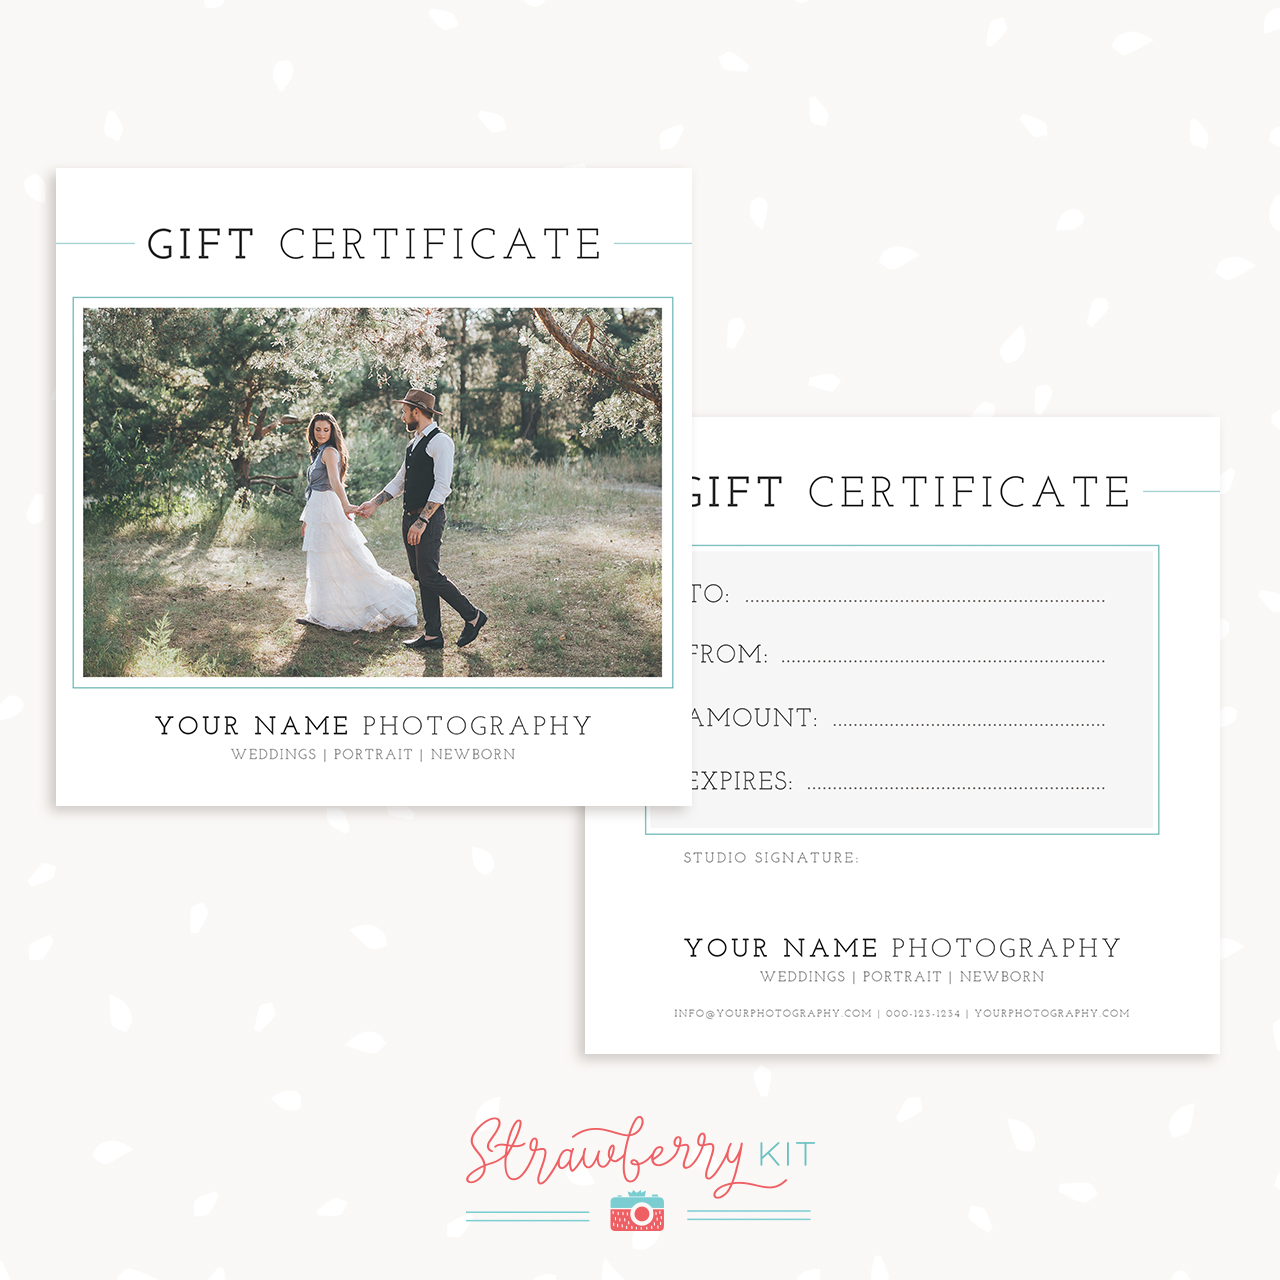 Gift Certificate Template for Photographers